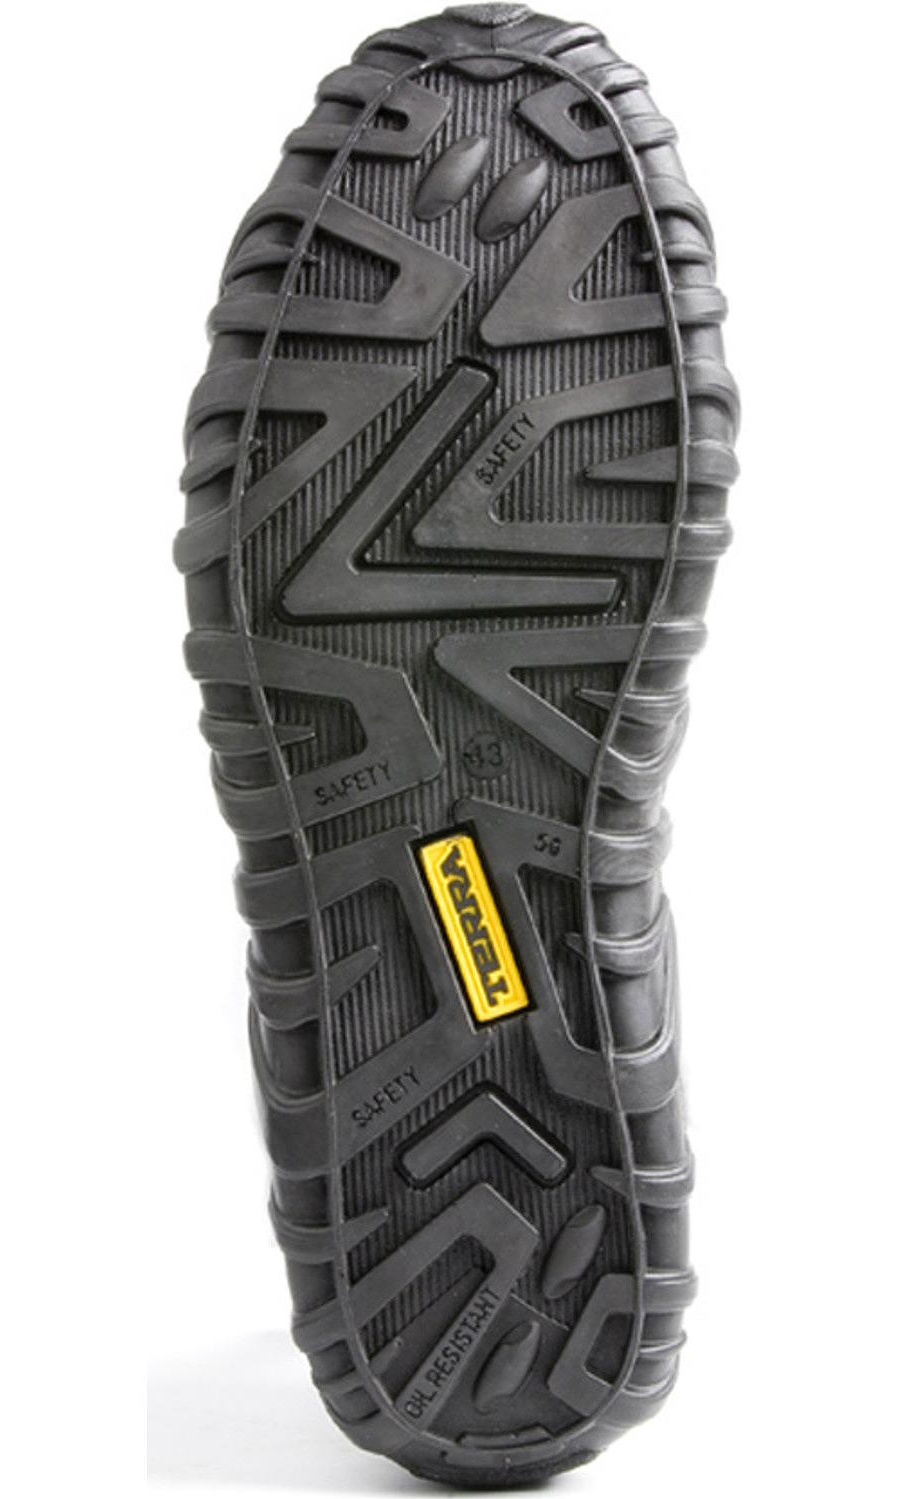 Men's Terra Spider Economical, stylish, and eye-catching shoes